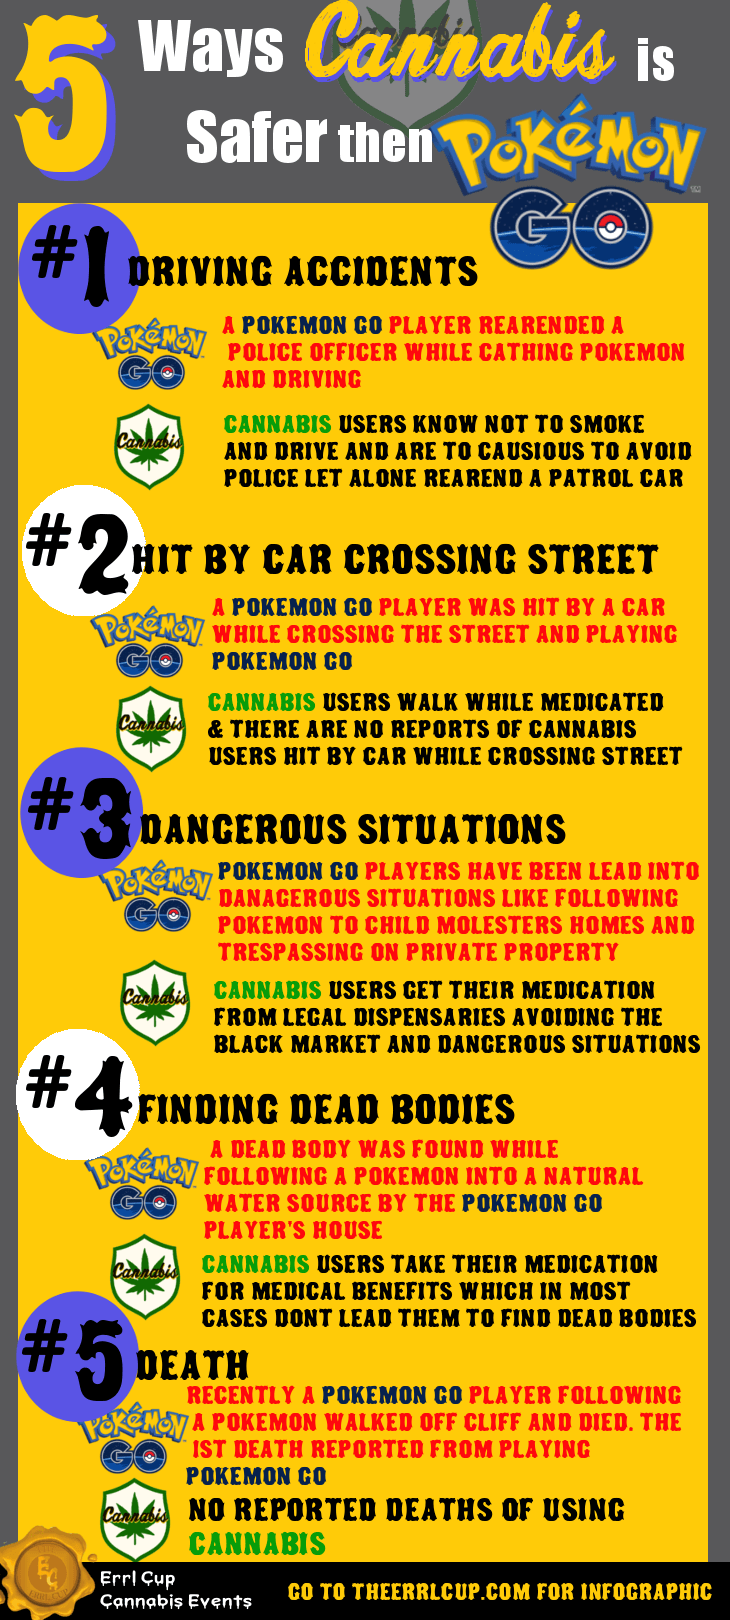 5 Way Cannabis is Safer then Pokemon GO